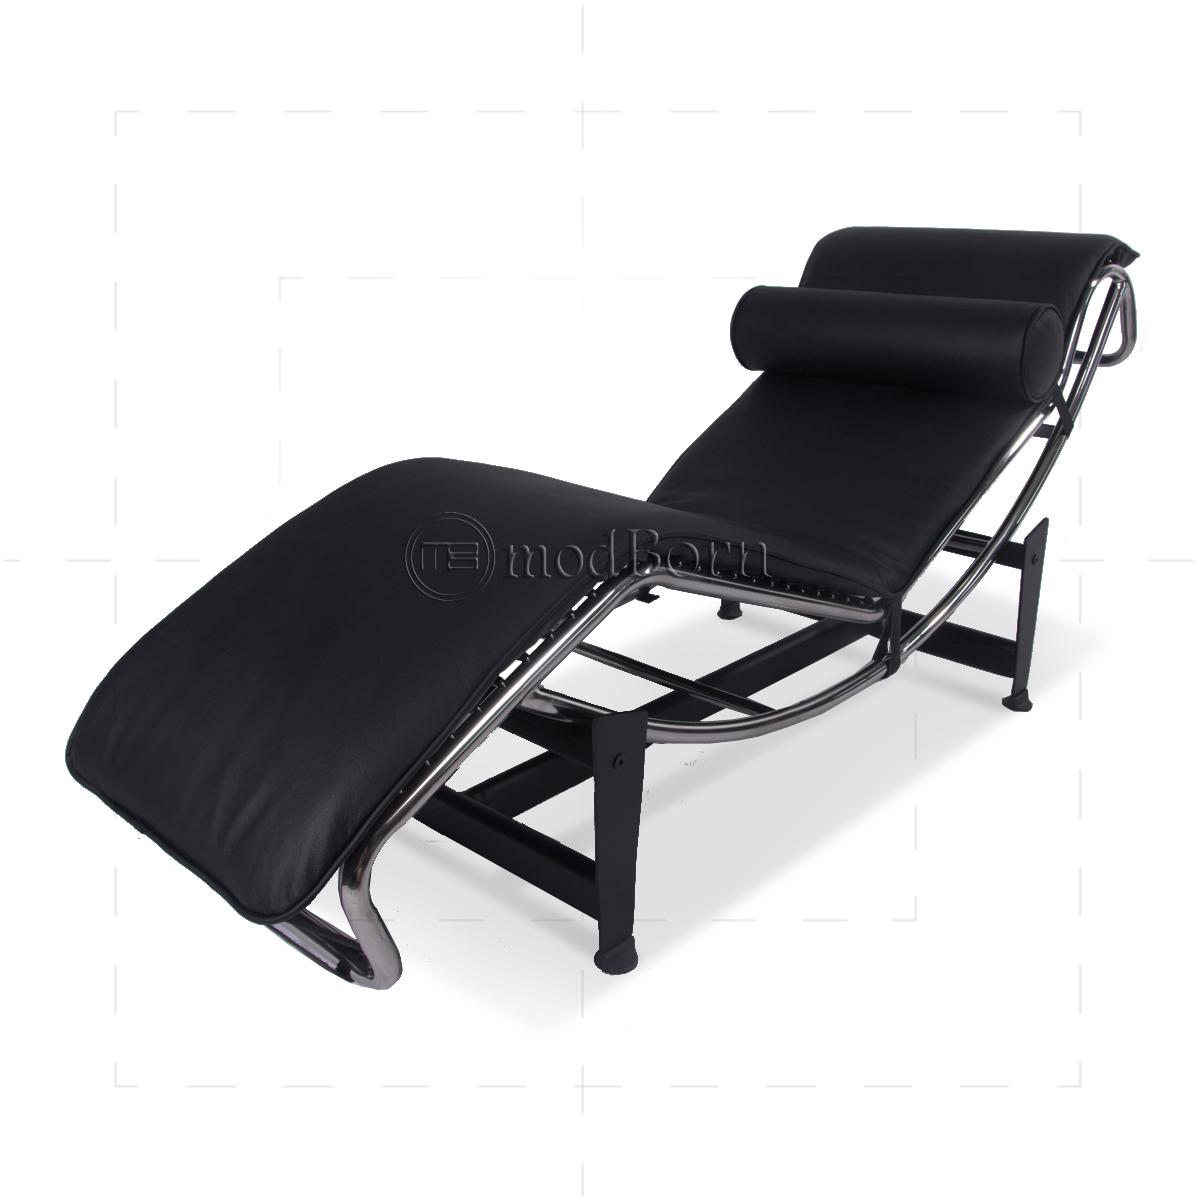 Le corbusier style lc4 chaise longue black leather for Black leather chaise longue